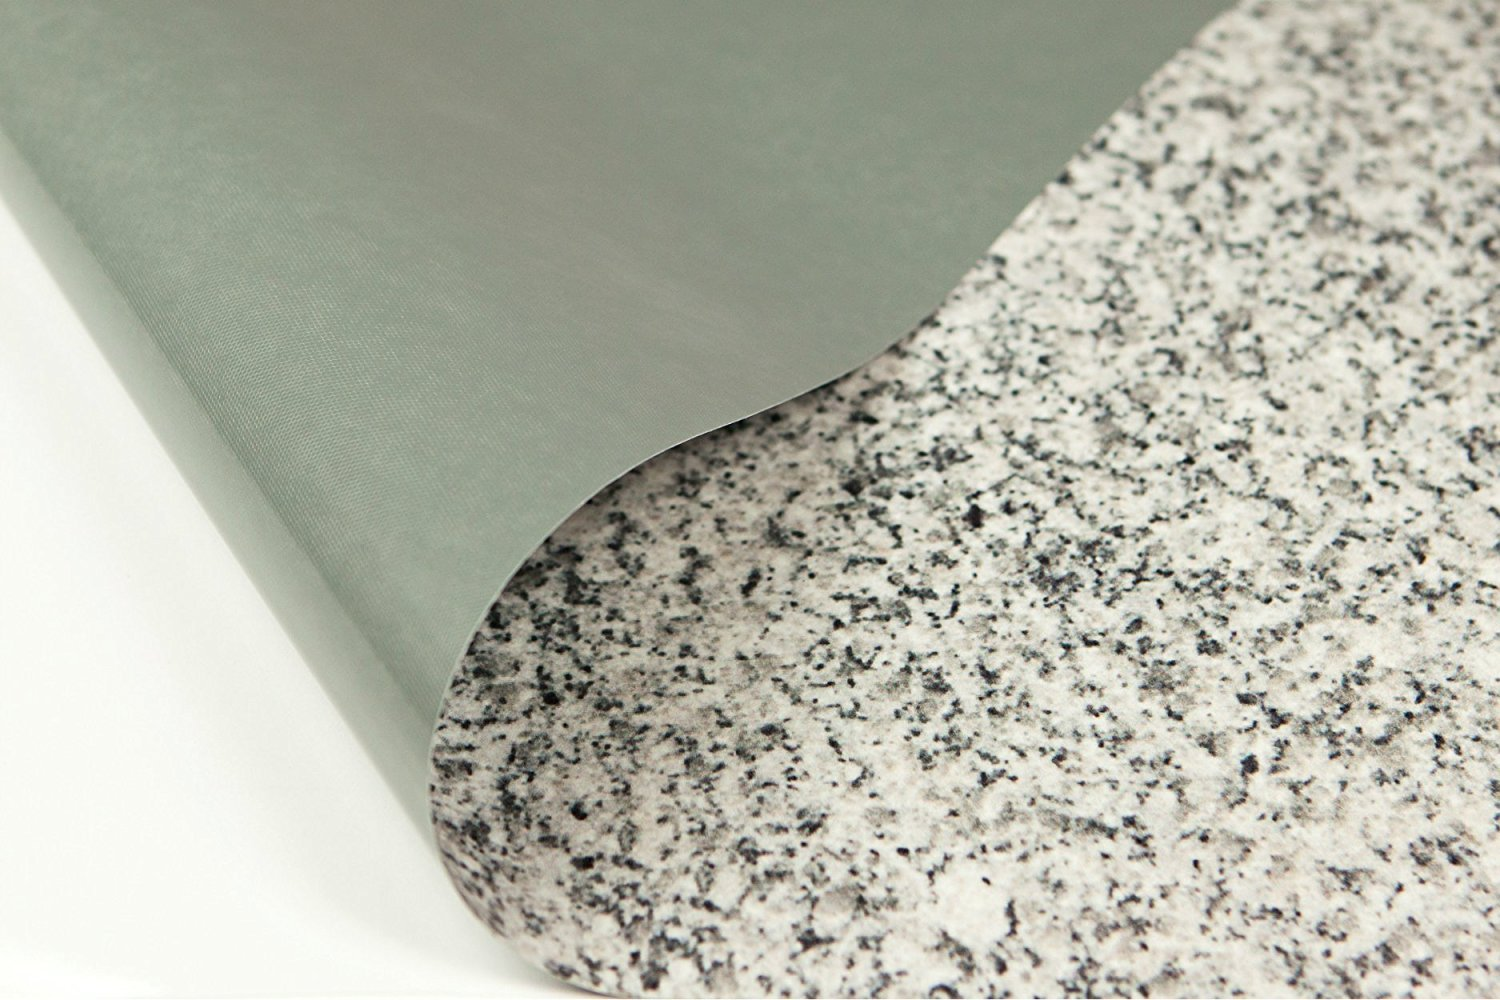 Instant Granite Luna Pearl Counter Top Film 36'' x 144'' Self Adhesive Vinyl Laminate Counter Top Contact Paper Faux Peel and Stick Self Application by Instant Granite (Image #6)